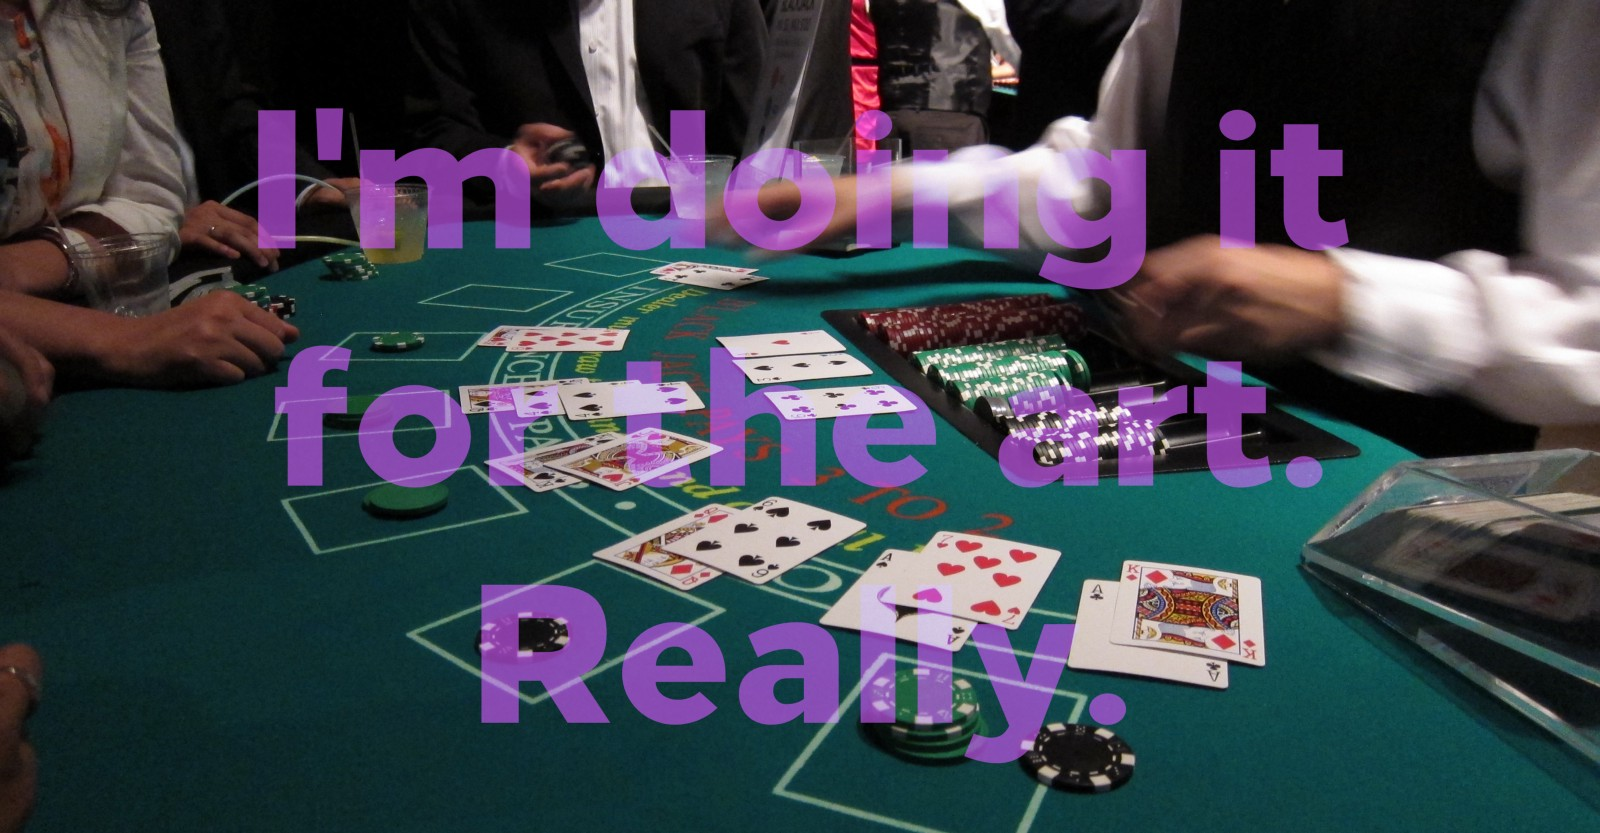 Texas holdem hands probability